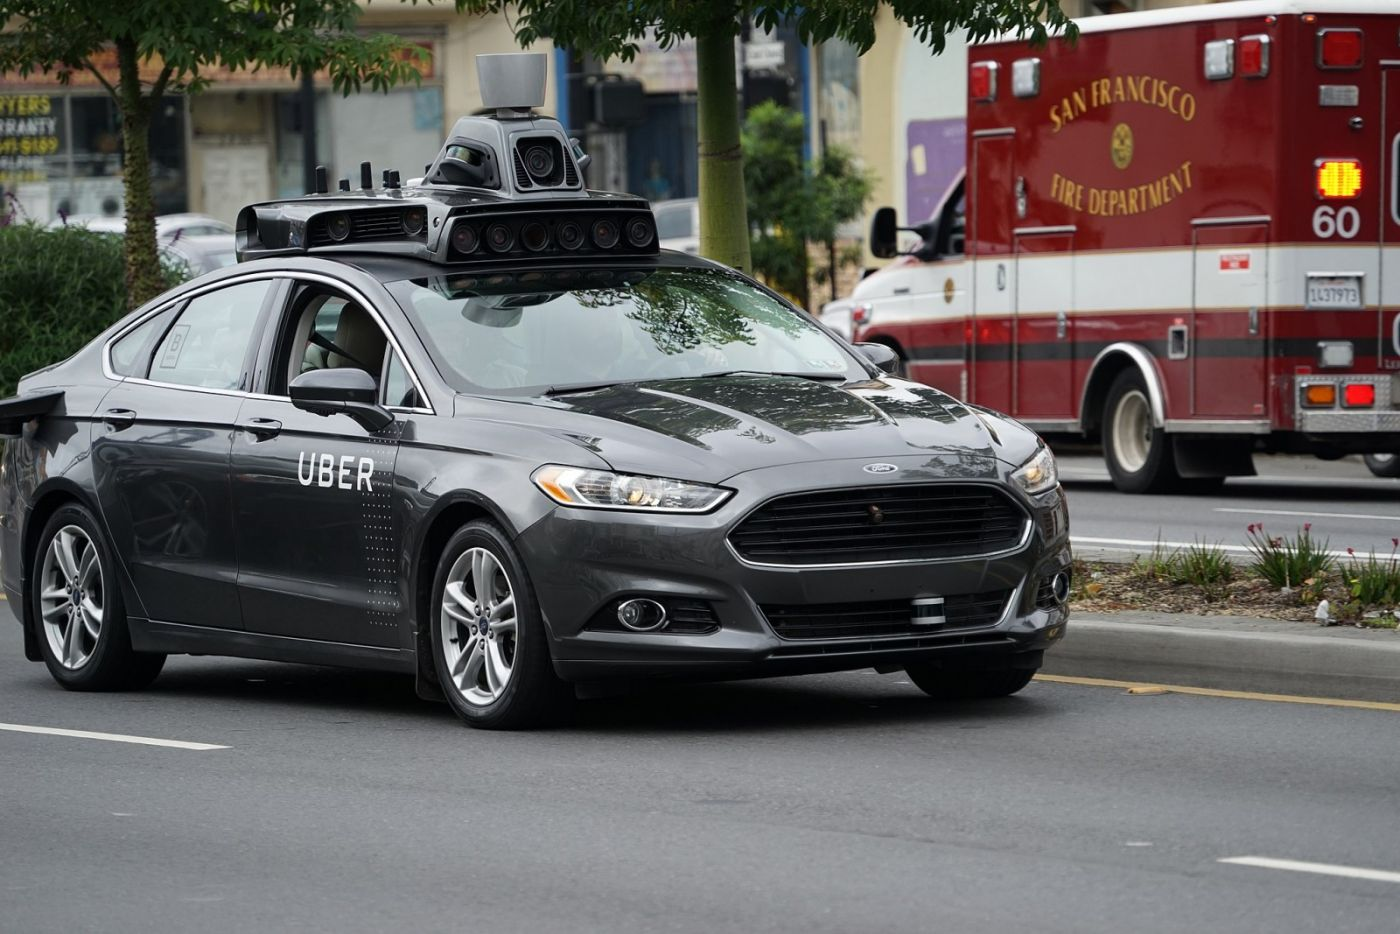 Autonomous Vehicles Are Coming and There's No Roadmap (Yet